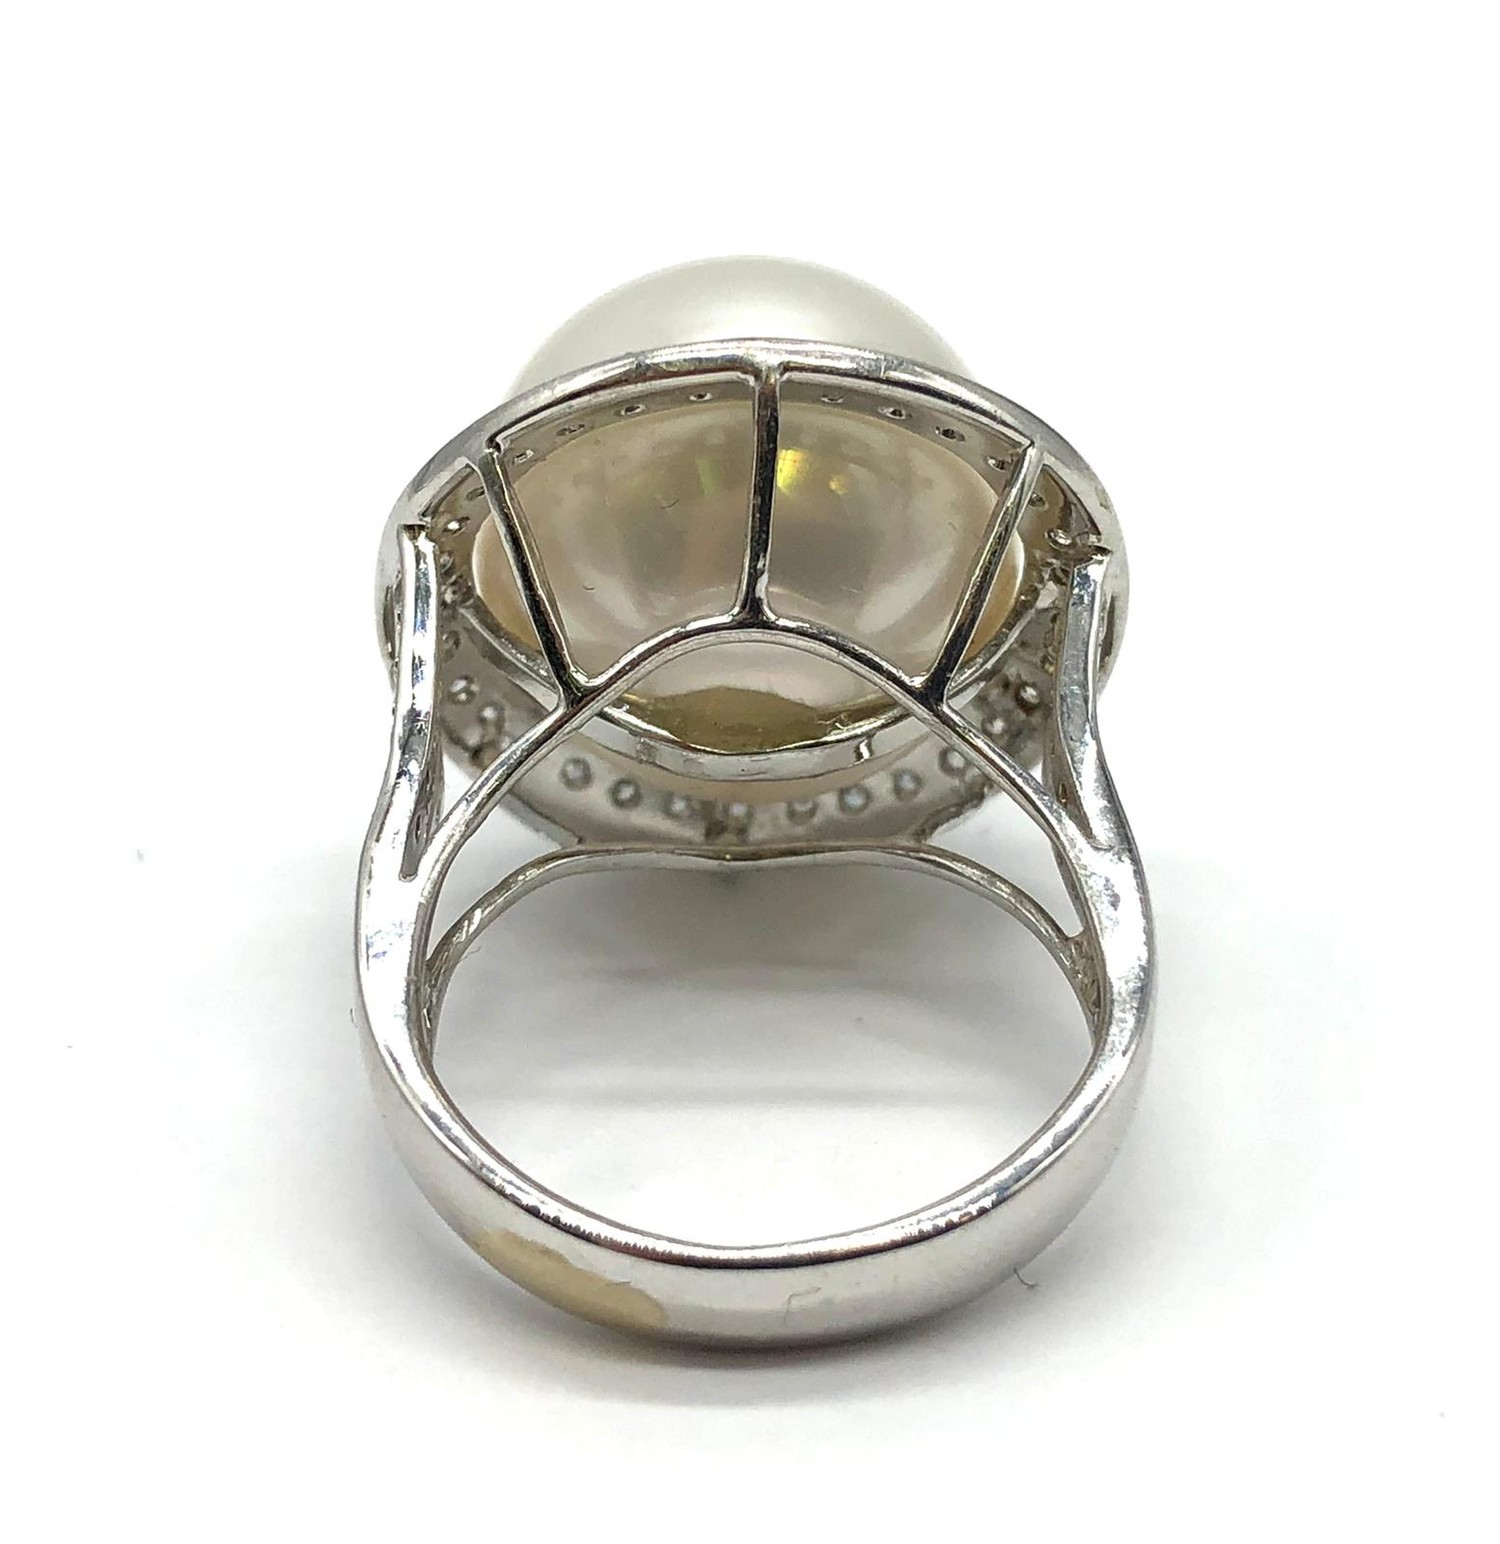 A large Kimoto pearl (17mm diameter) ring set in diamond and 18ct white gold ring, weight 14.43g and - Image 3 of 7